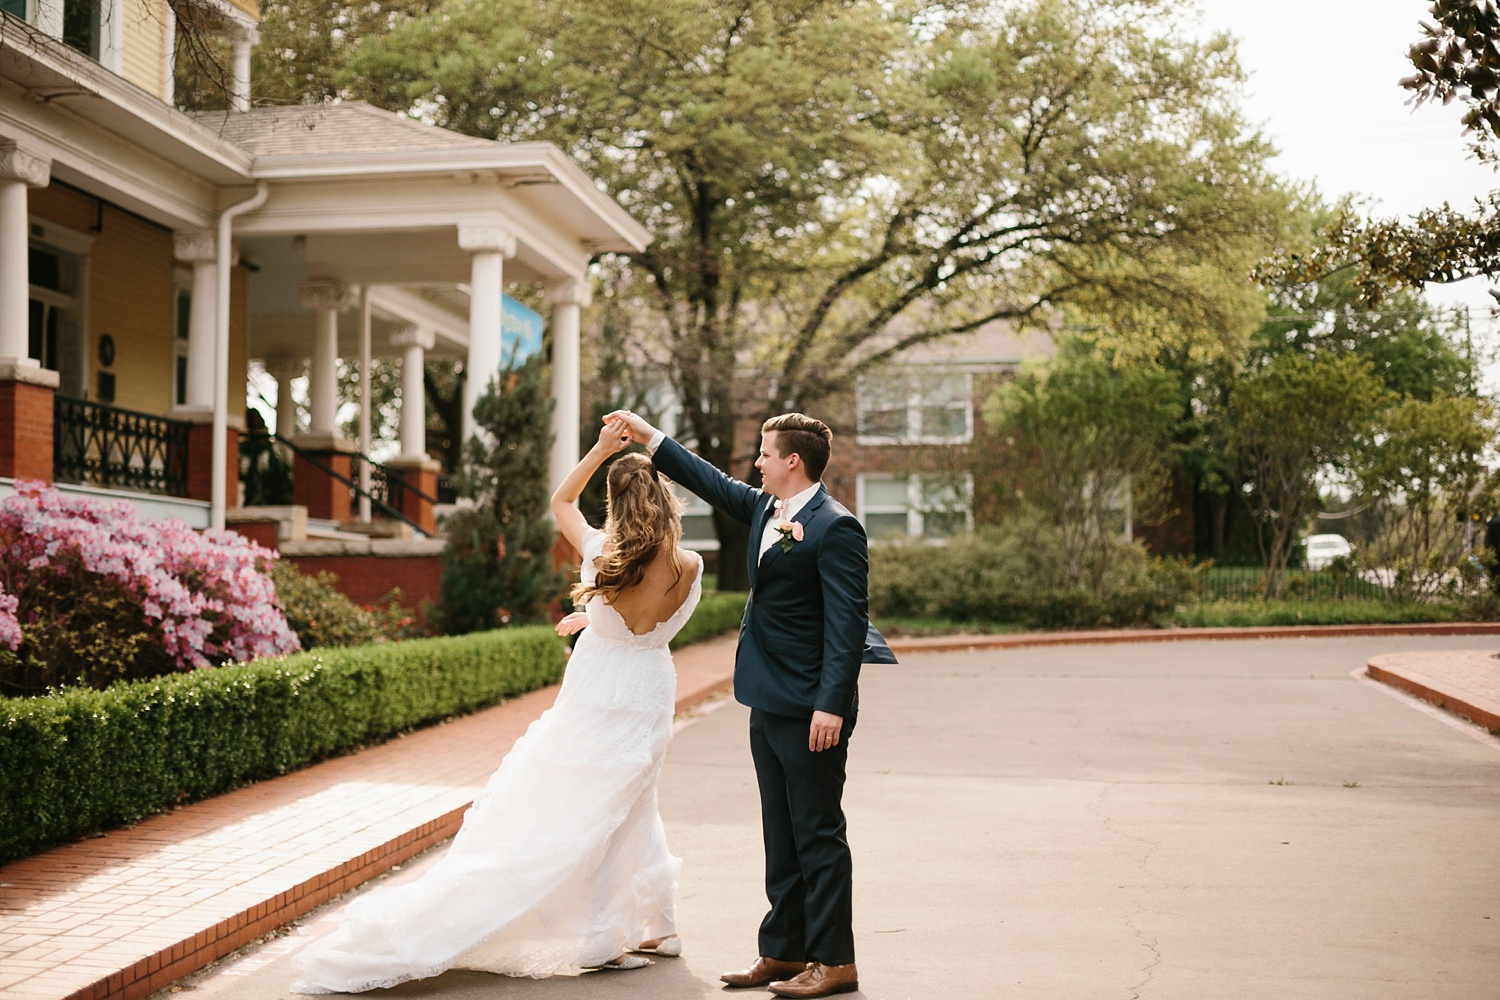 Amber + Daniel an intimate, simple, spring ceremony at Heard Craig Center and reception at Gather in McKinney, Texas by North Texas Wedding Photographer Rachel Meagan Photography 094